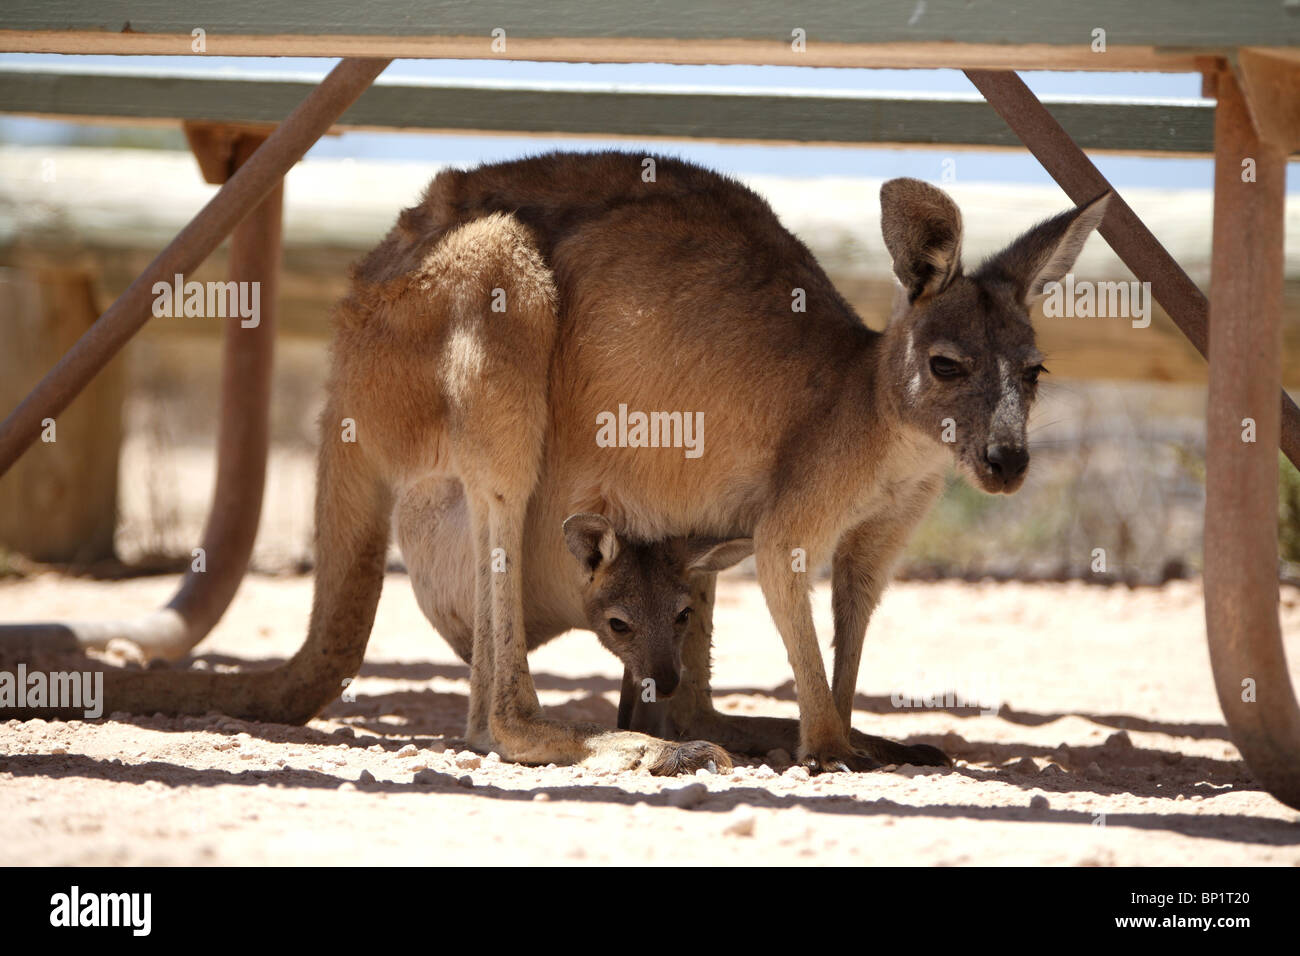 A kangaroo with a baby in the shade of a camping table, Exmouth, Australia Stock Photo